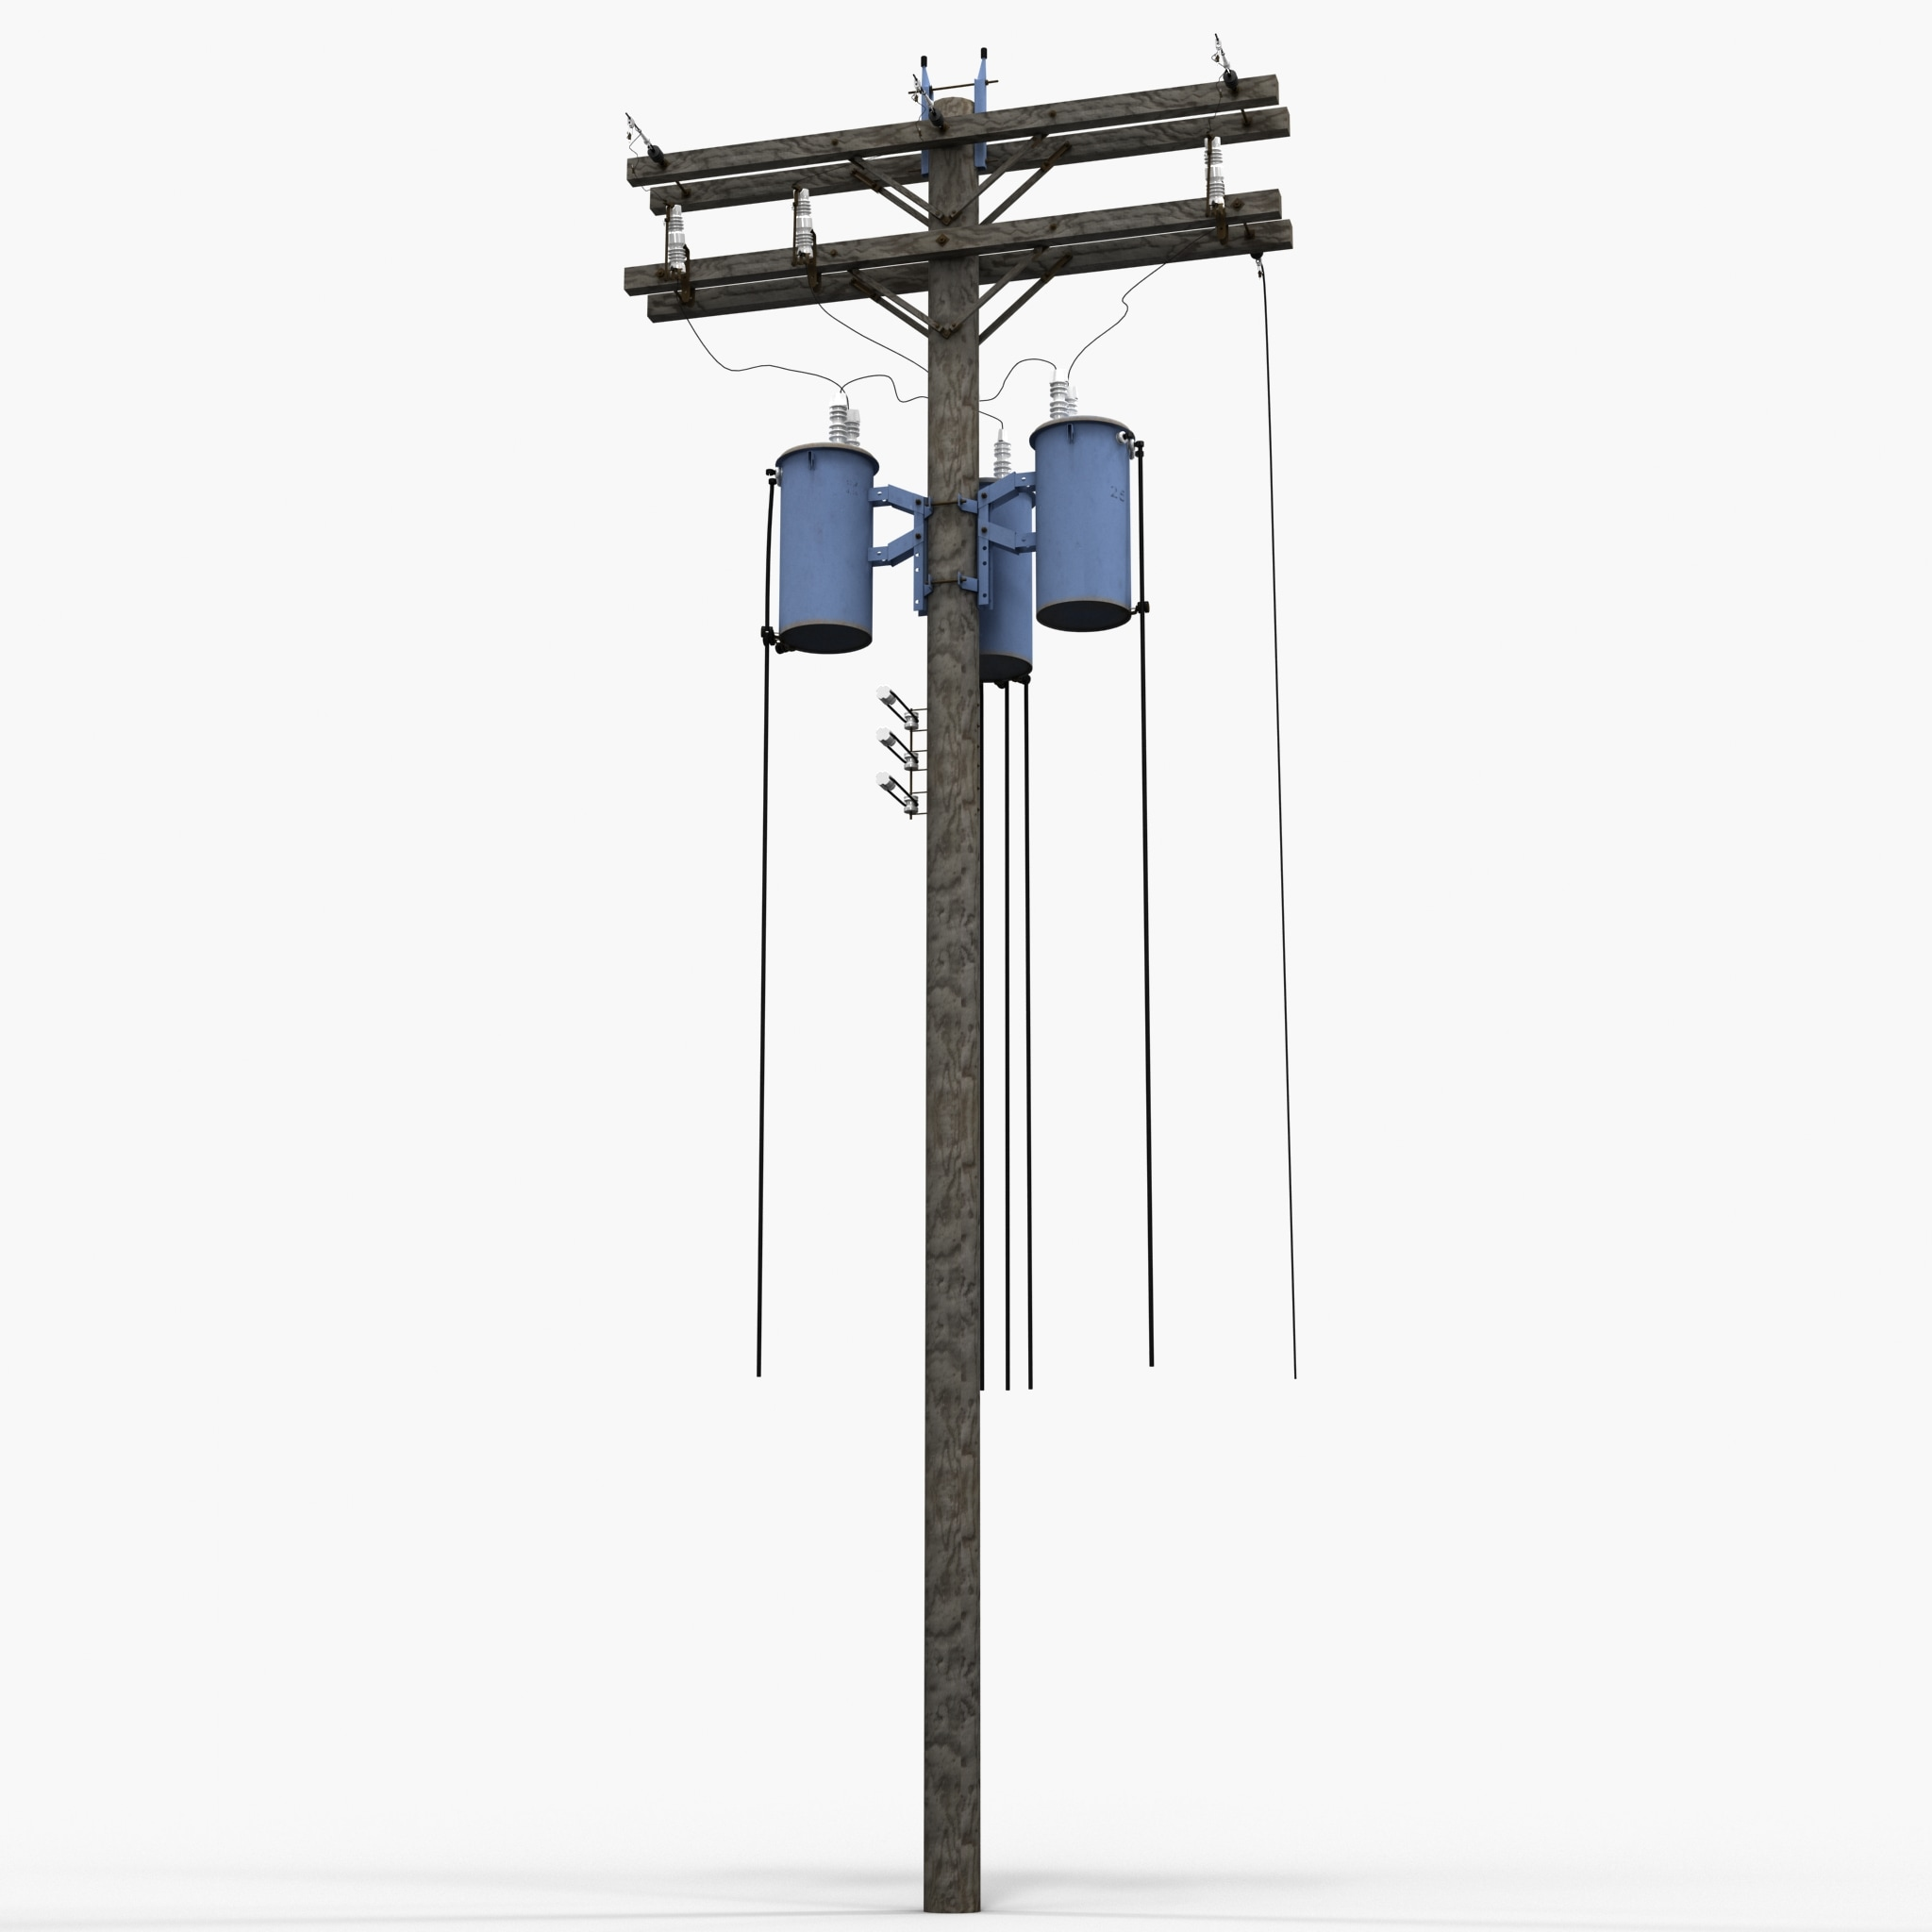 telephone utility pole bing images Electrical Transformer Wiring Diagram utility transformer wiring diagram